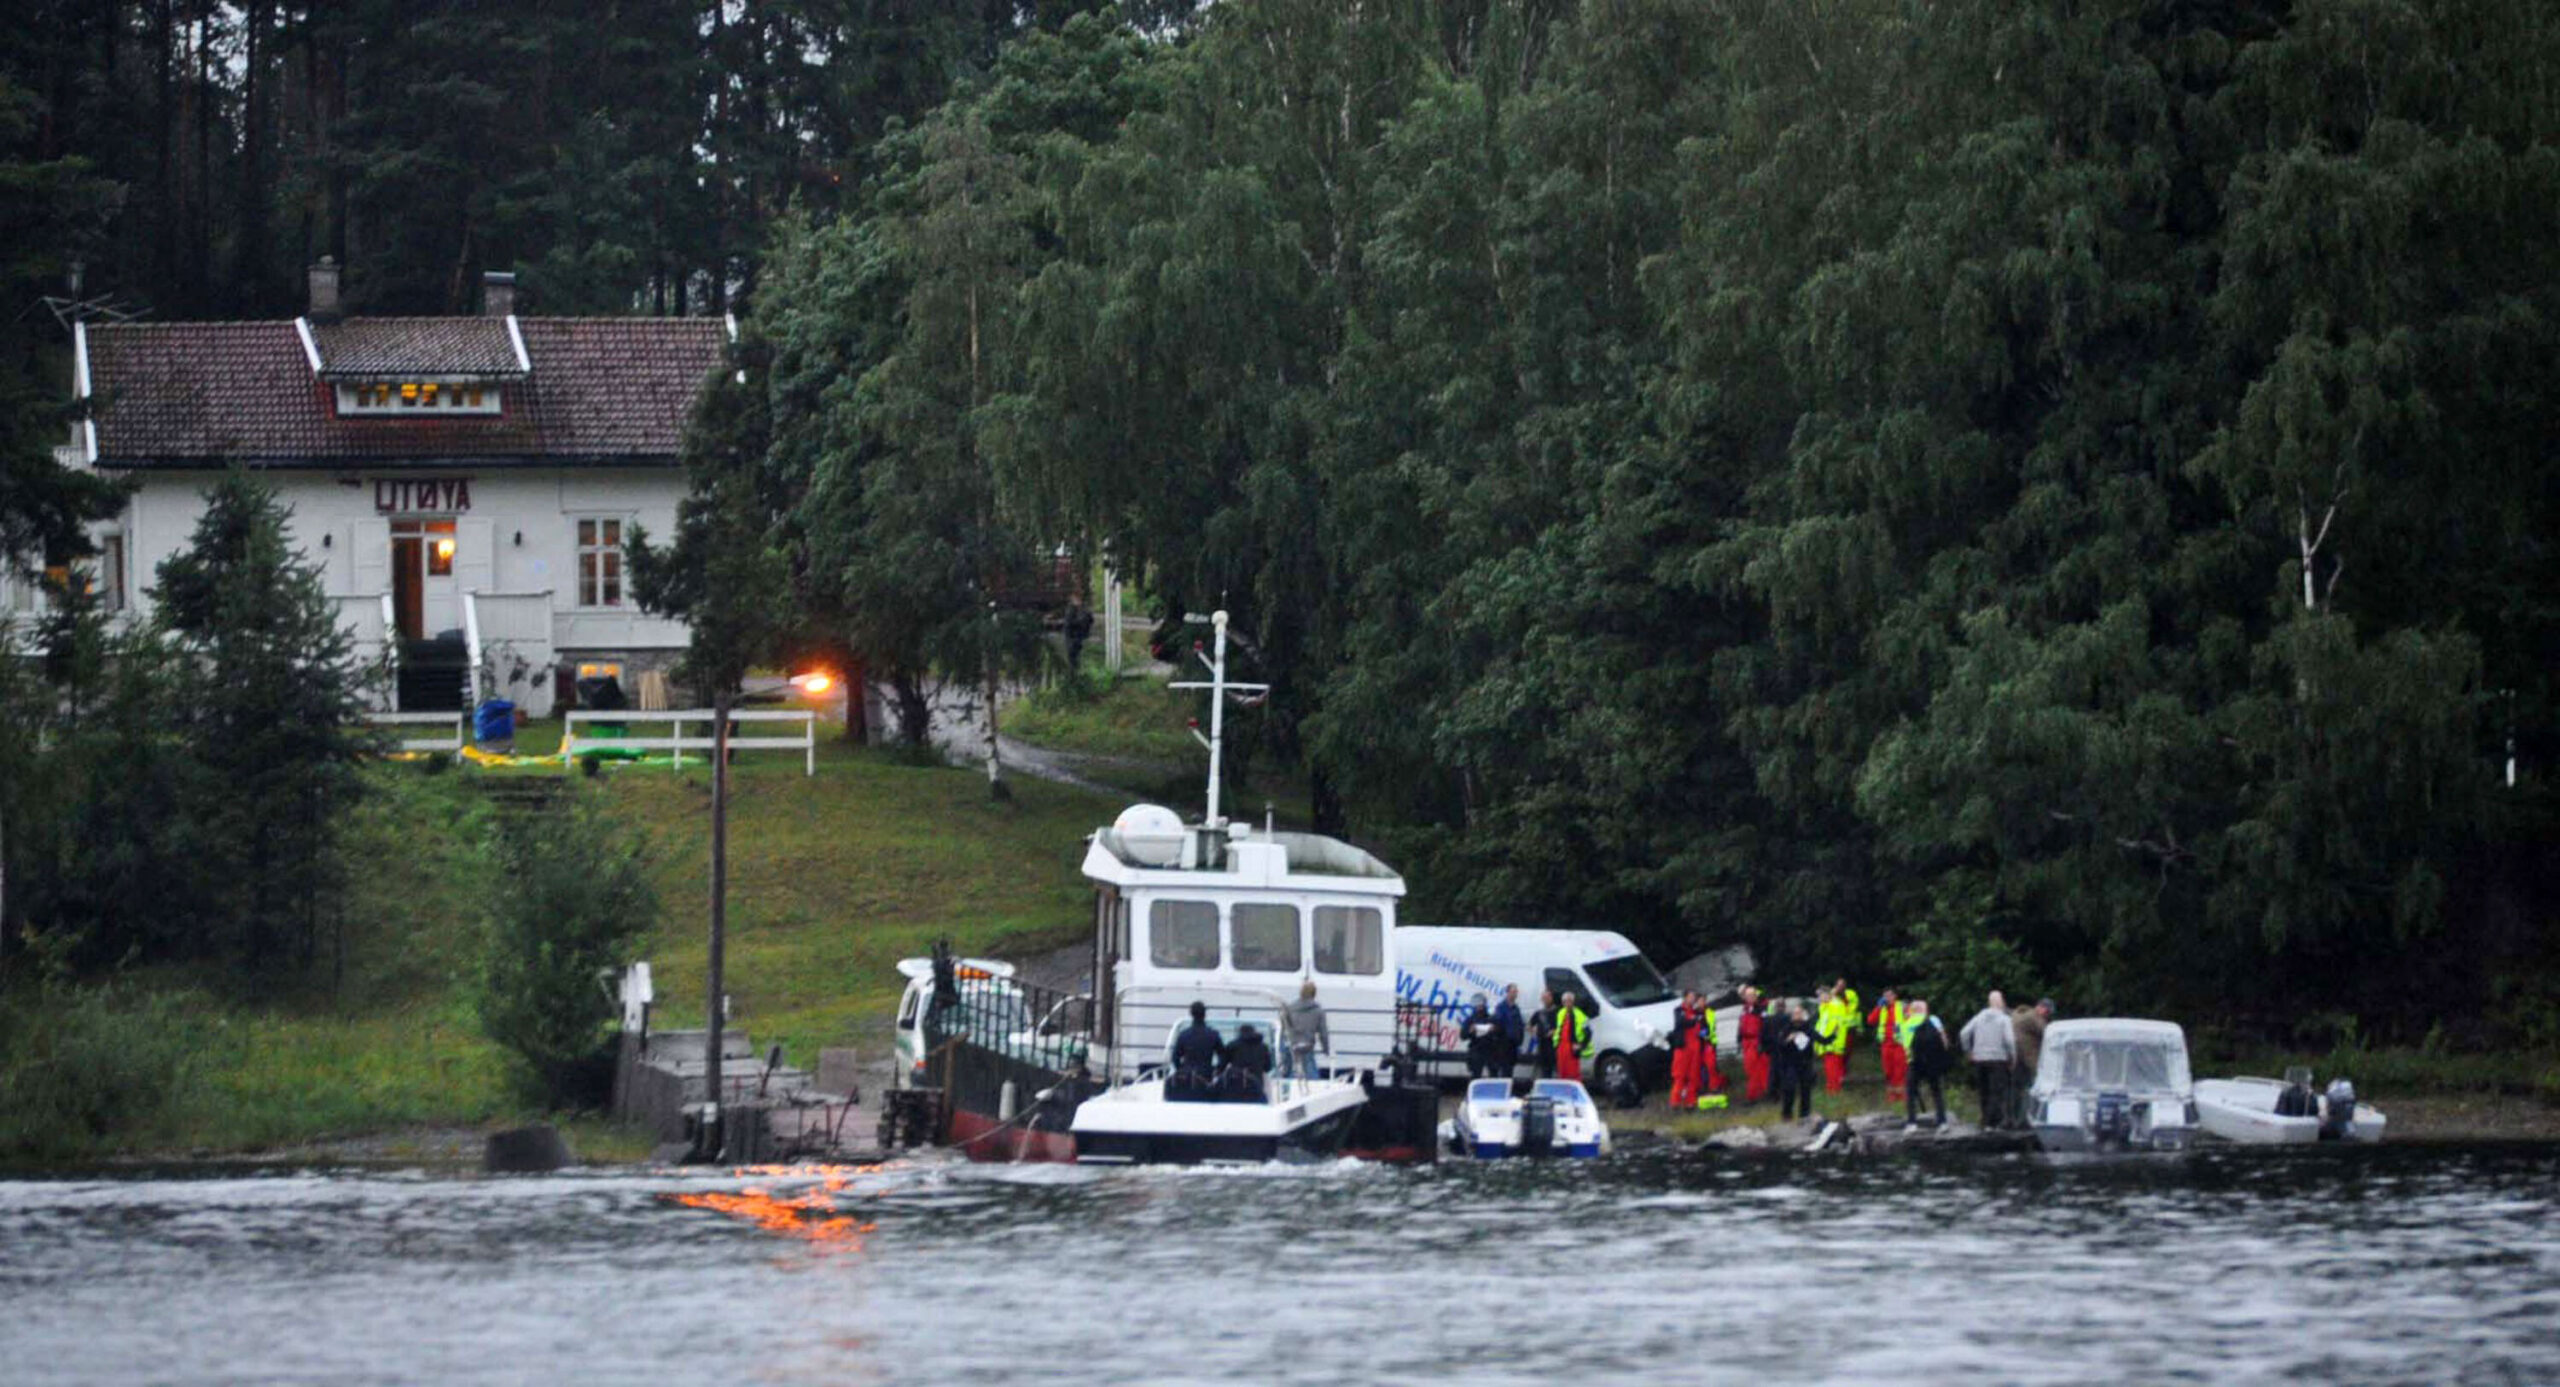 <i>Vegard M. Aas/presse30.no/Getty Images</i><br/>Police and emergency services gather following the massacre at a summer youth camp on July 22